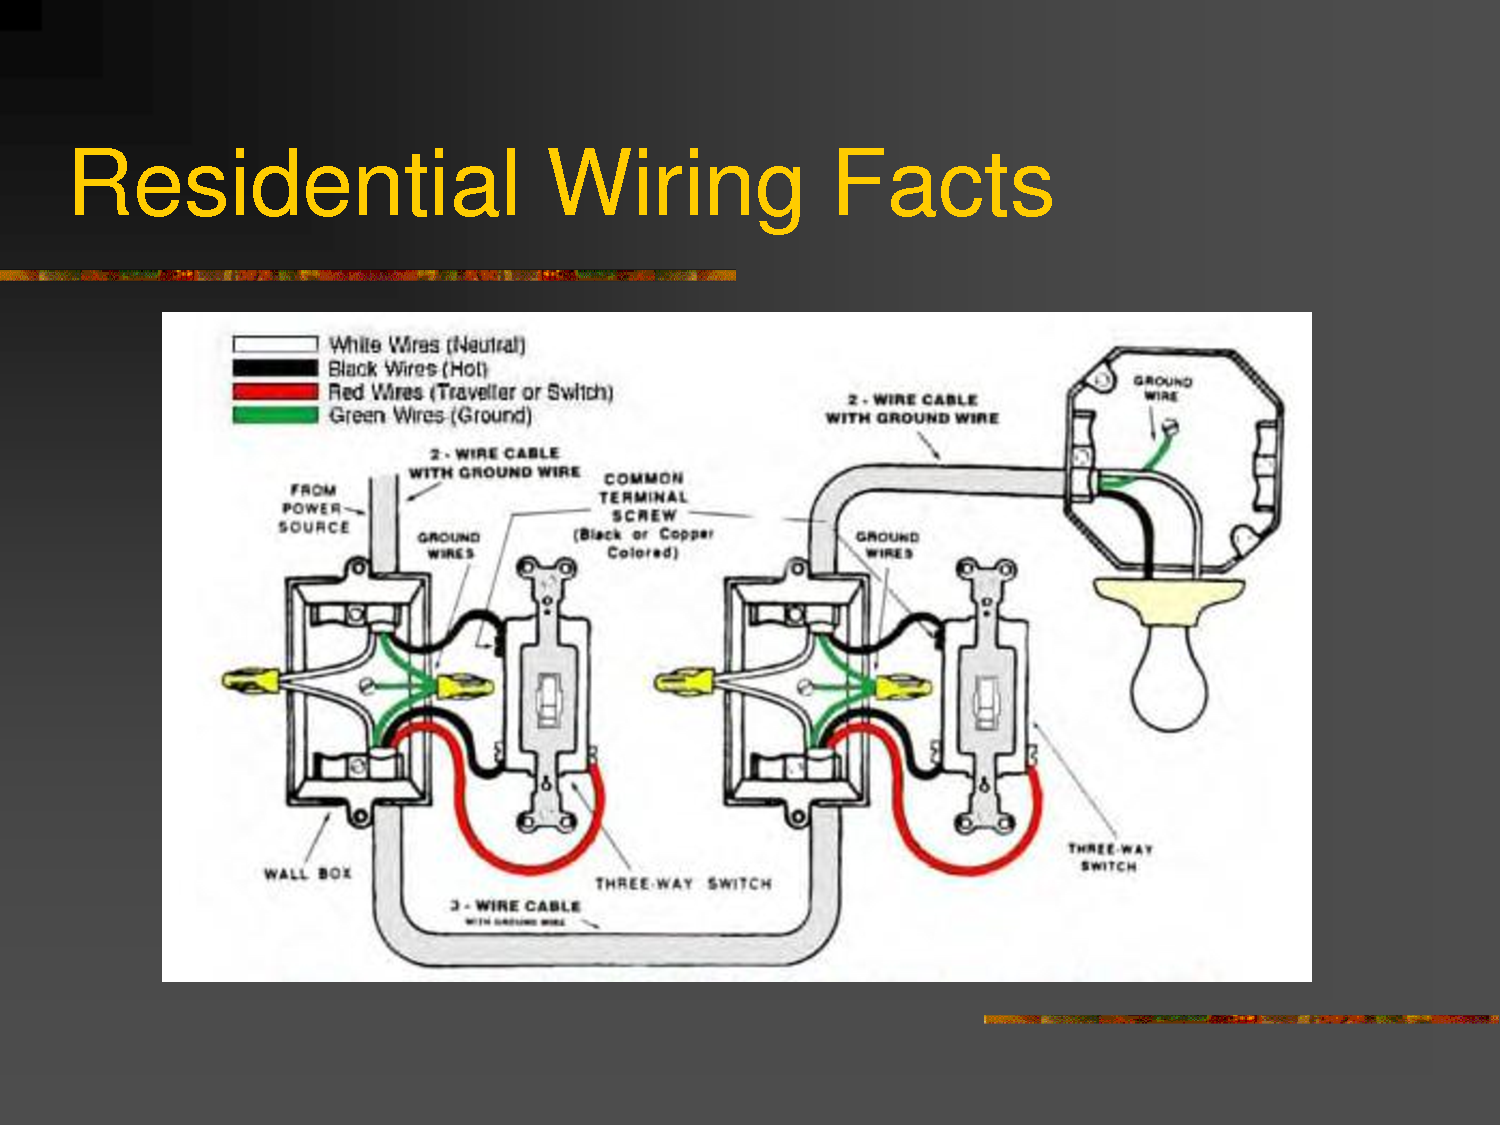 4 best images of residential wiring diagrams house electrical rh pinterest com household electrical wiring schematic household electrical wiring manuals pdf